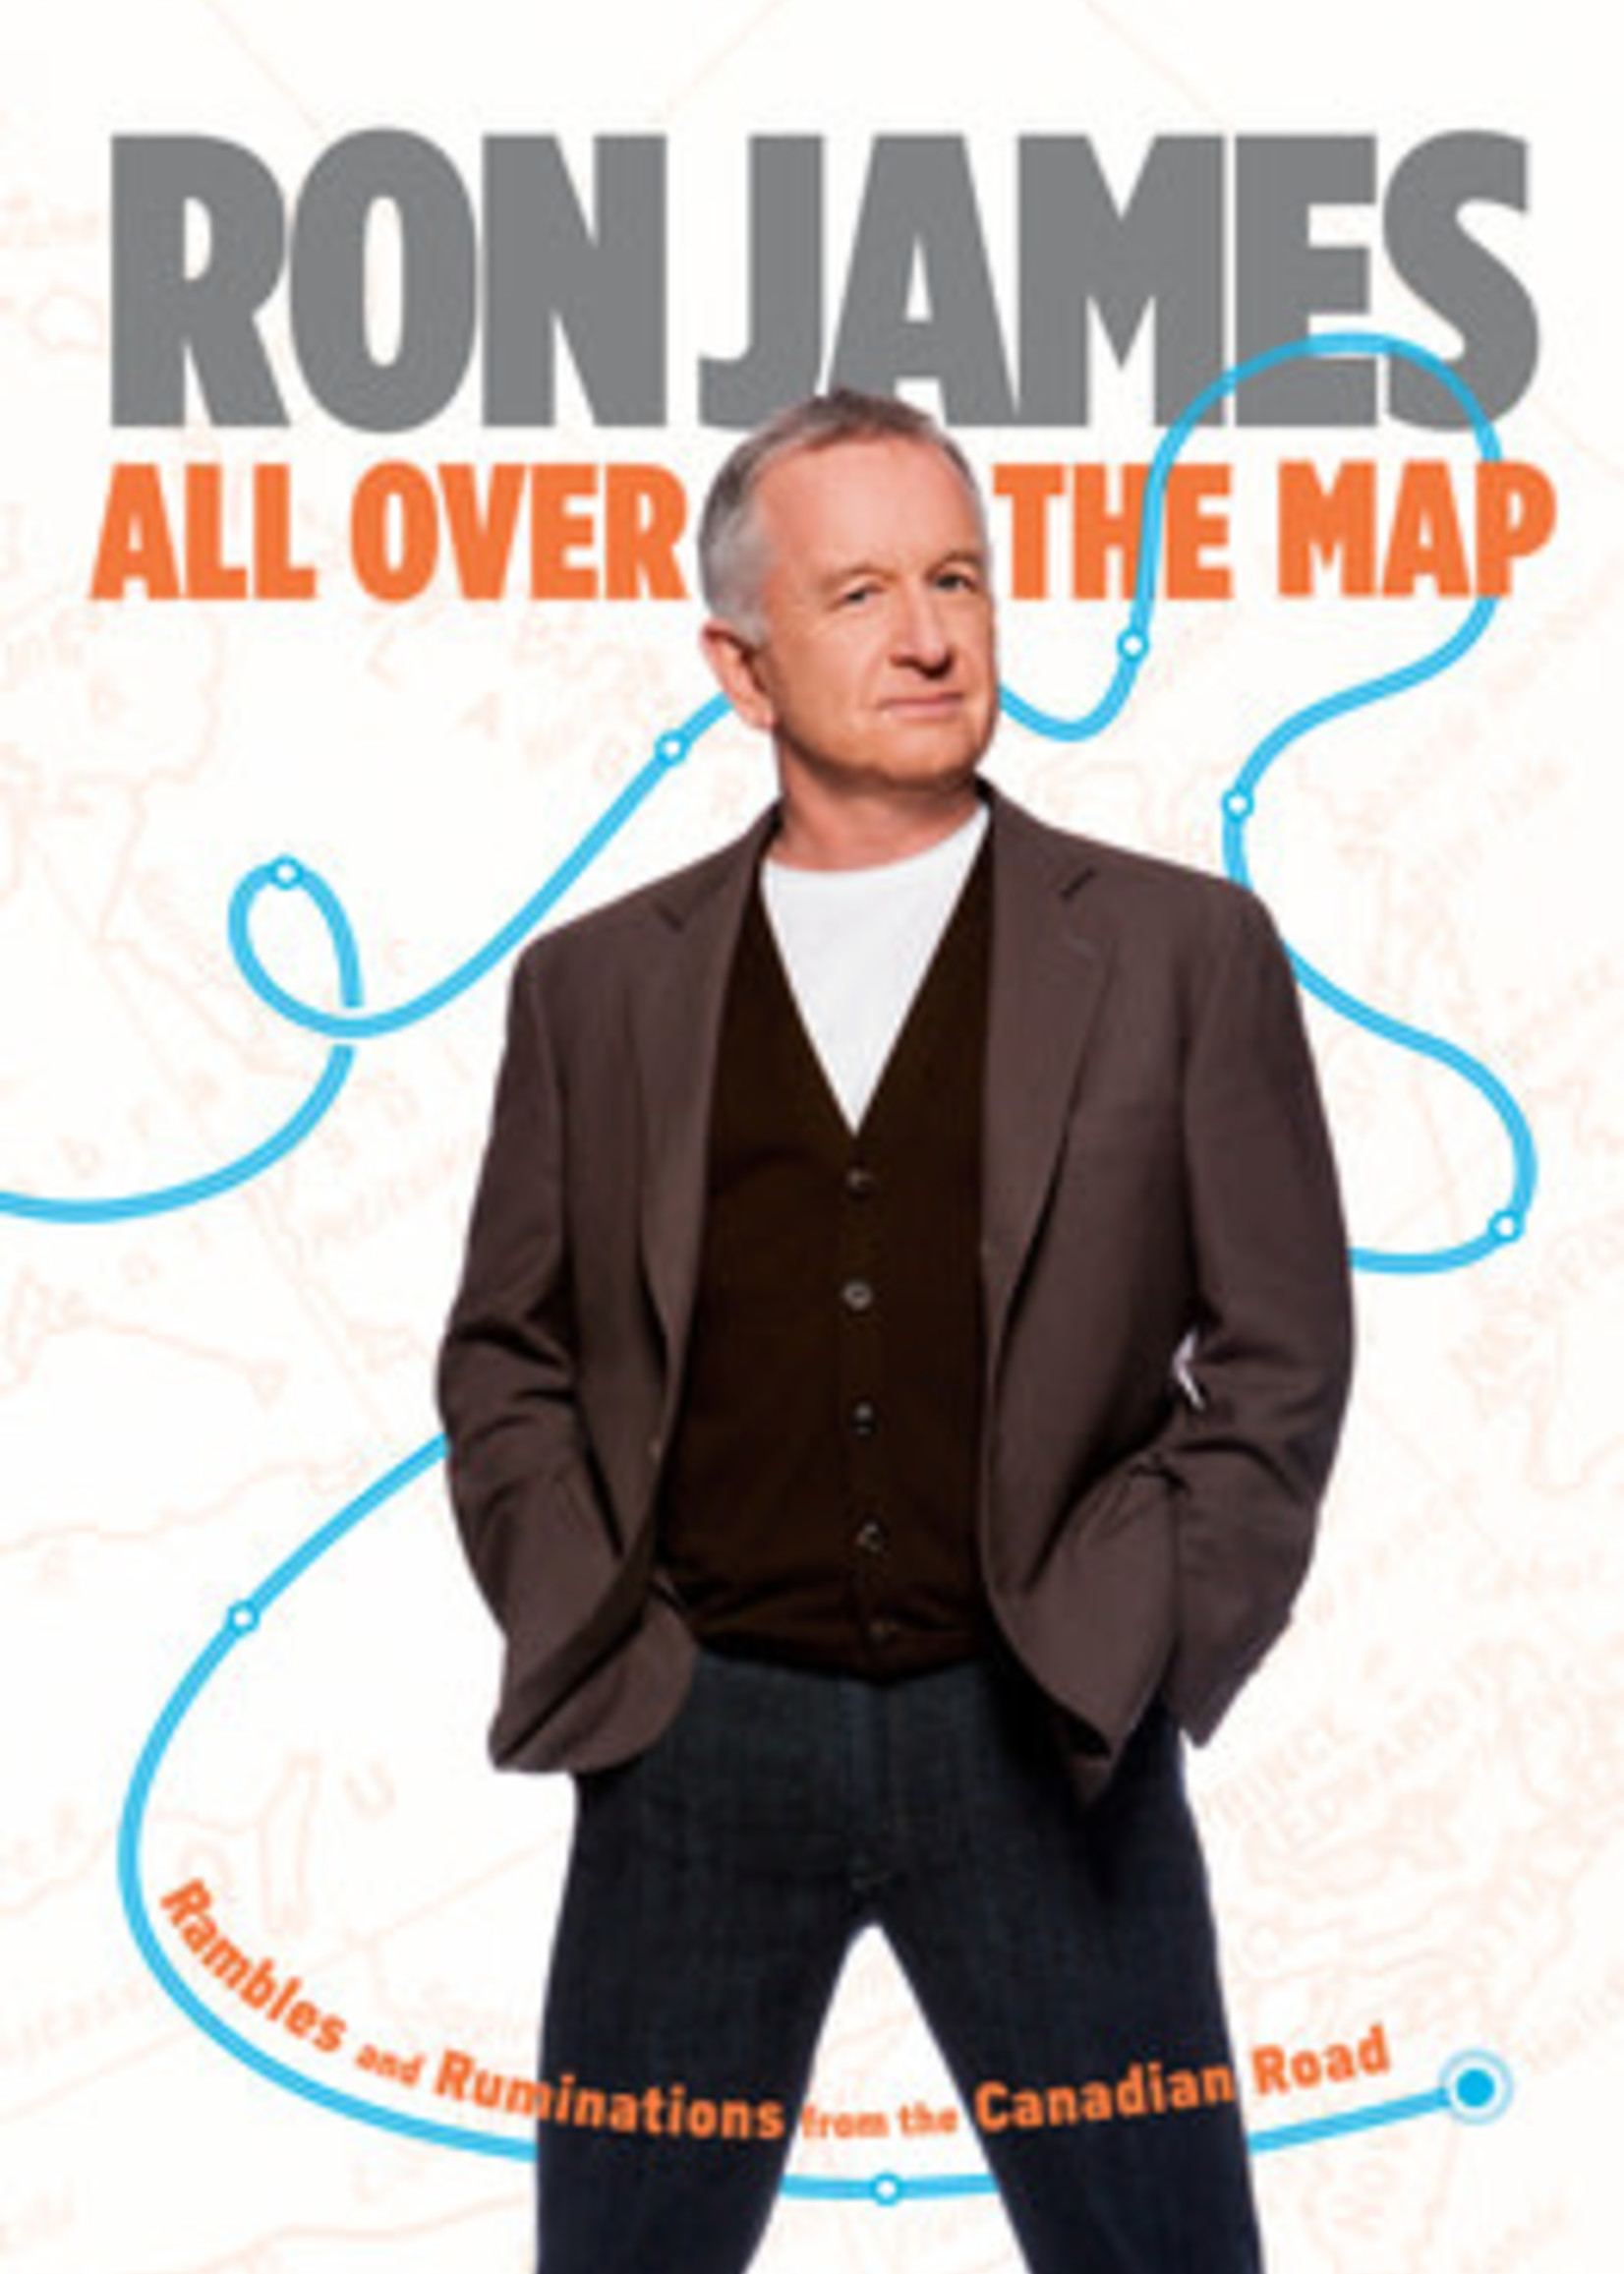 All Over the Map: Rambles and Ruminations from the Canadian Road by Ron James